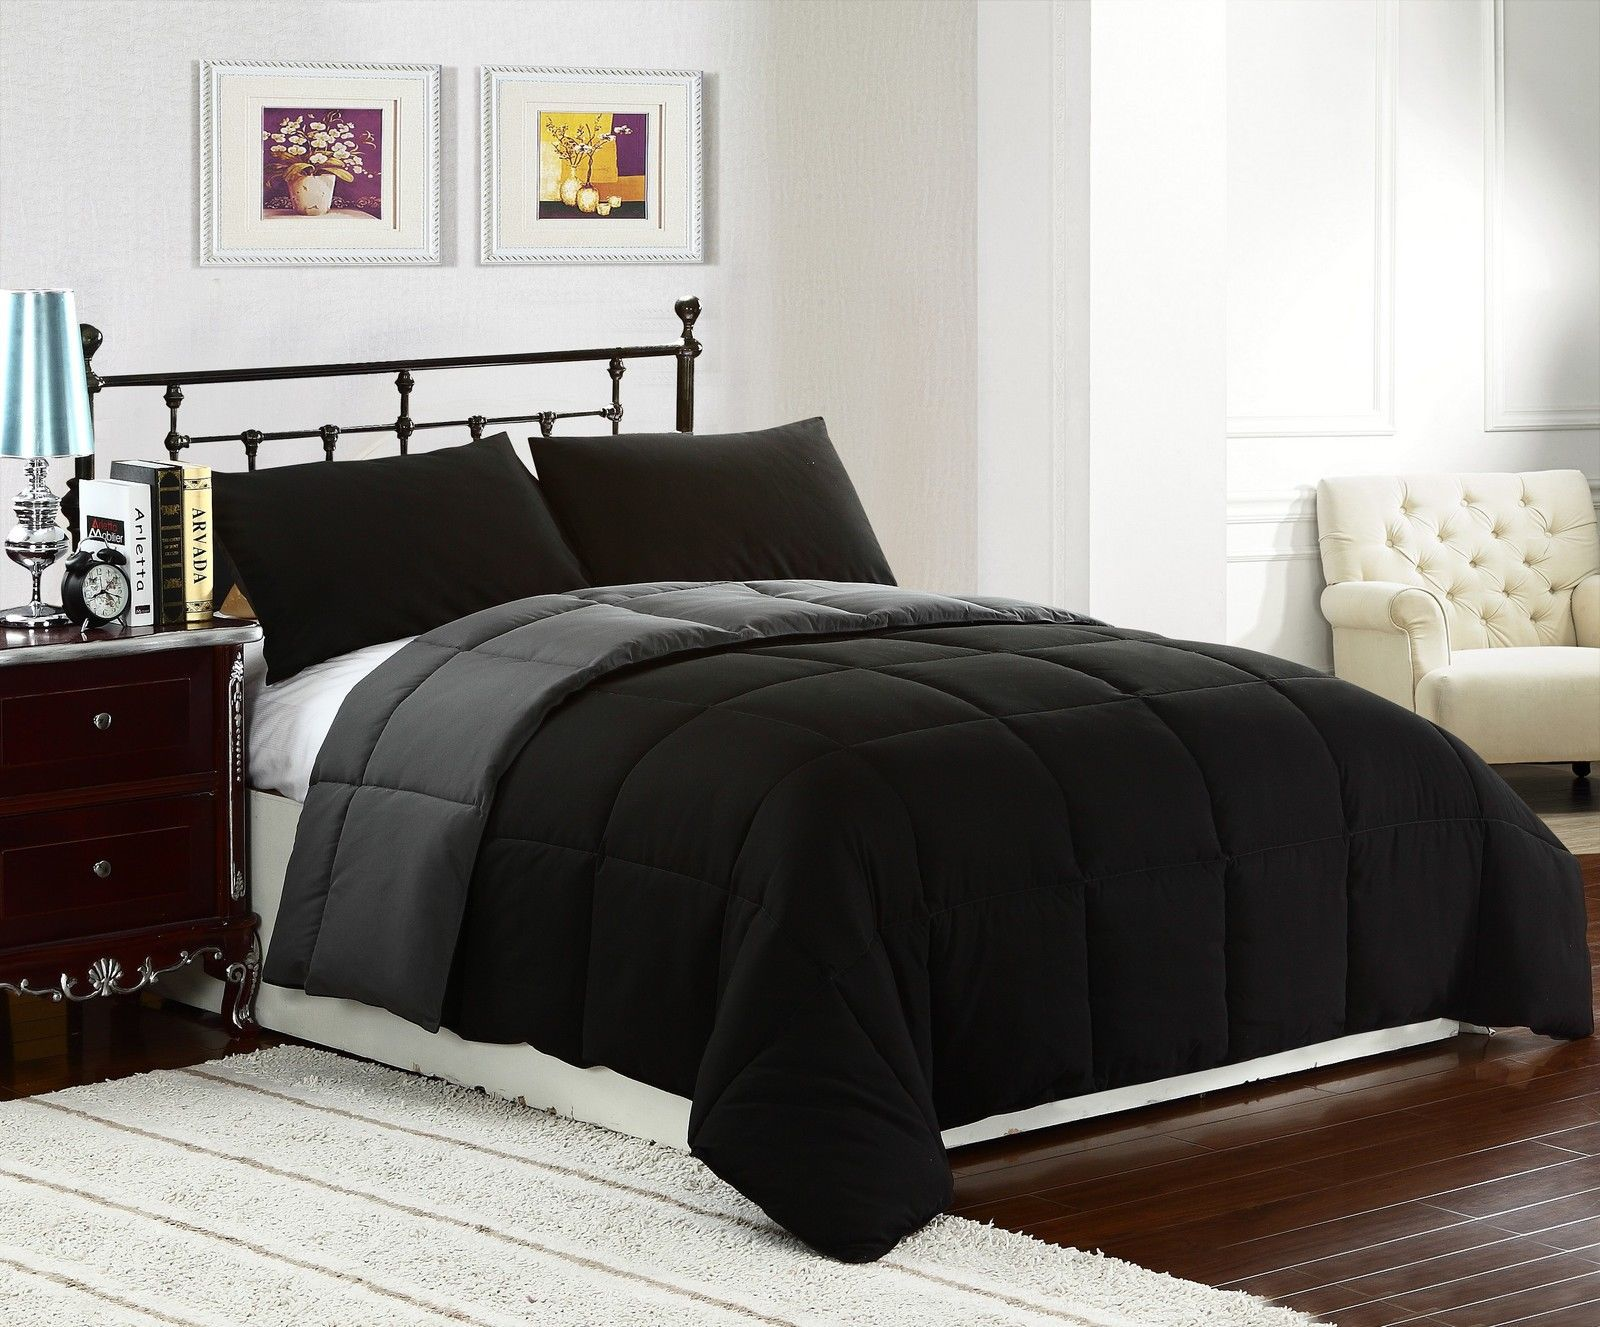 King size 3pc reversible down alternative comforter set for Bed sets with mattress included